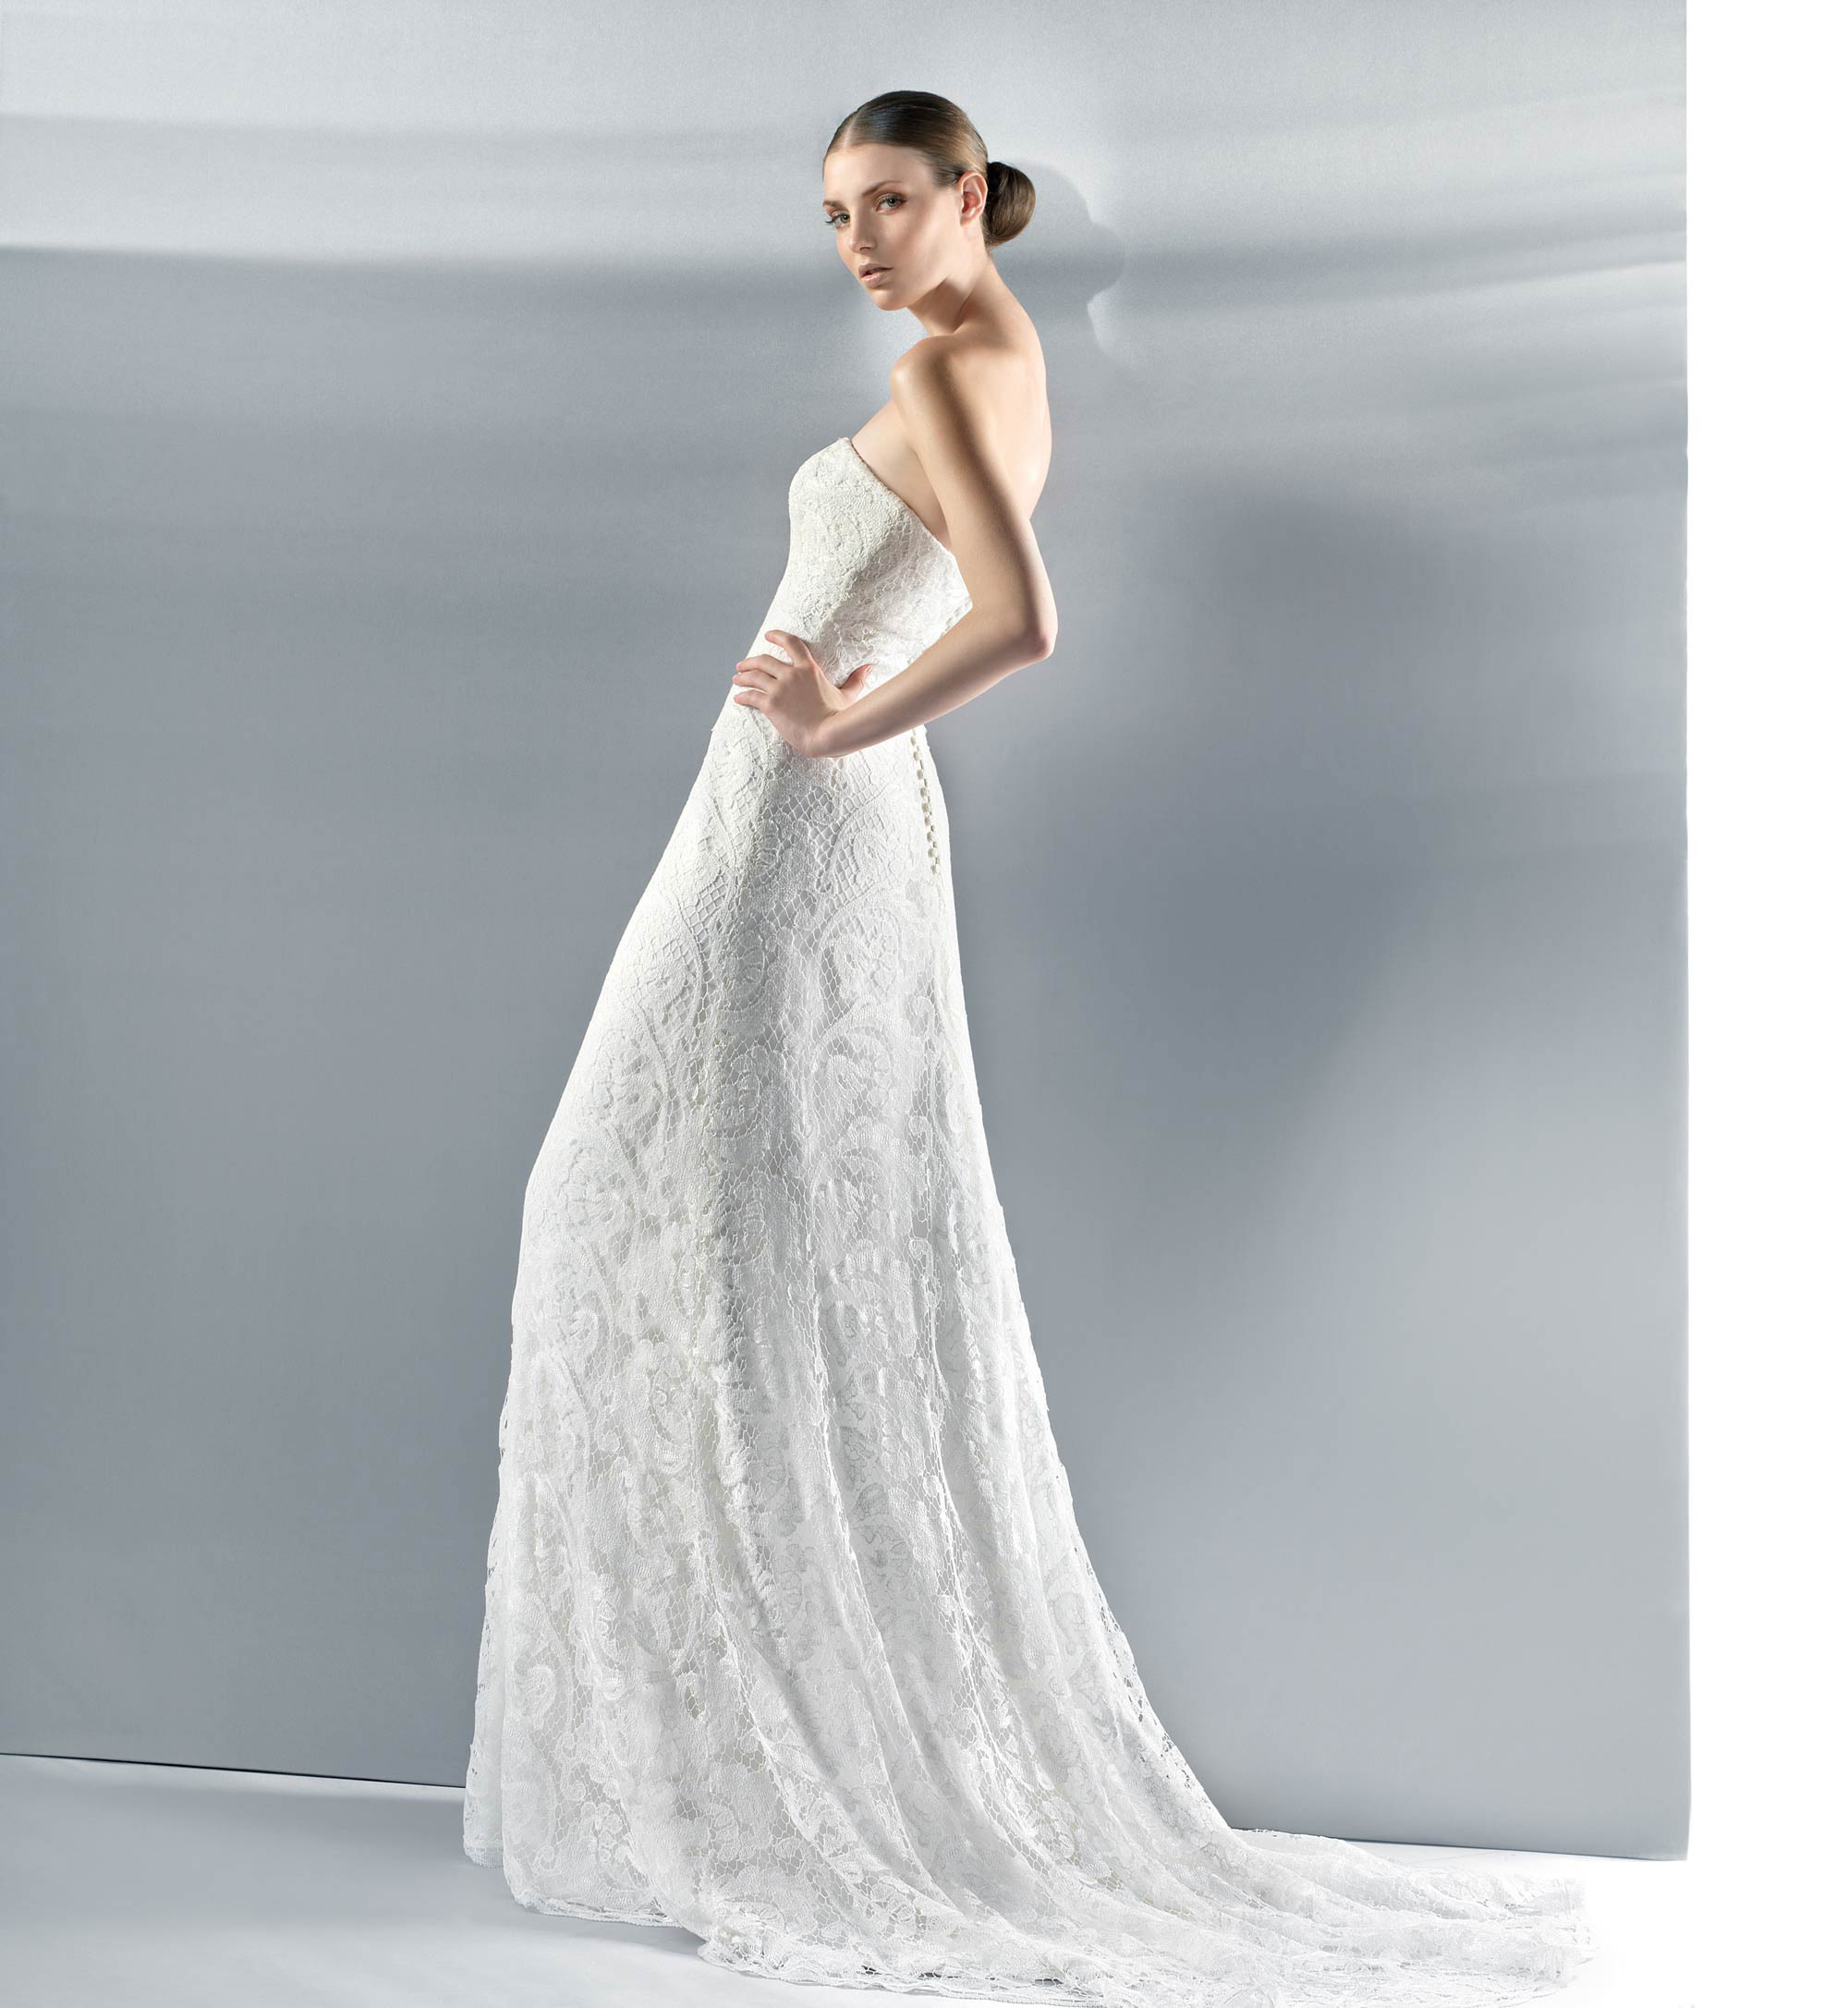 Jesus Peiro Spring Summer 2012 Bridal Collection | The FashionBrides